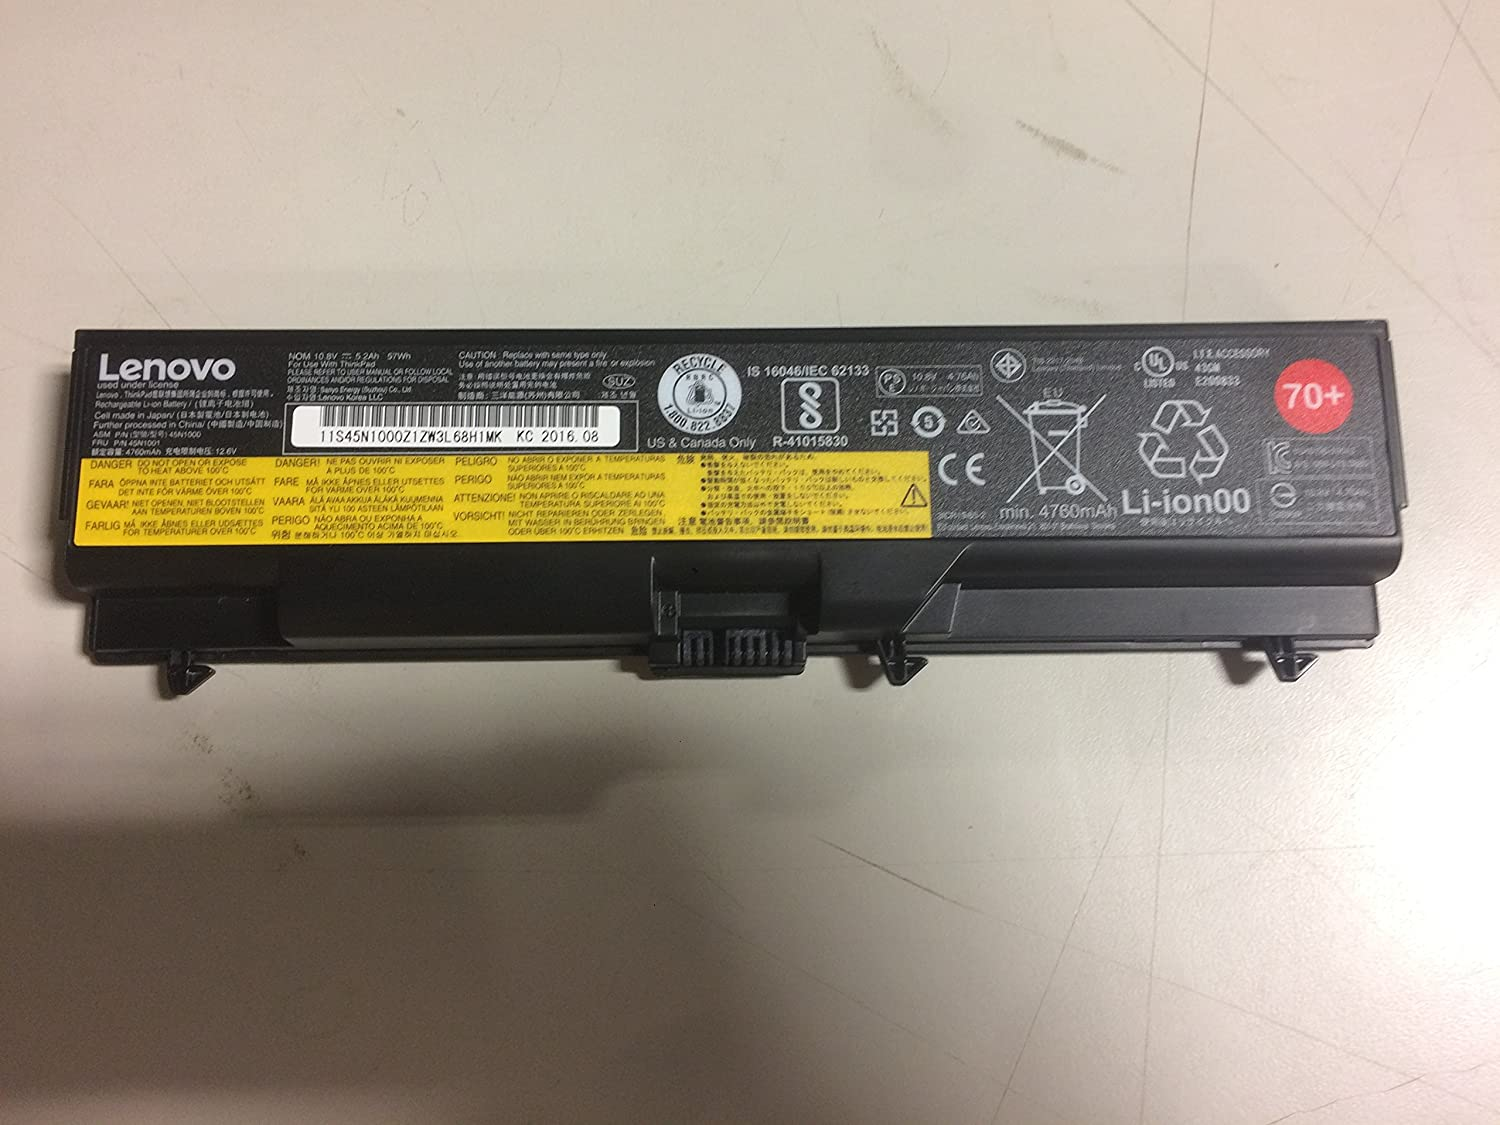 Lenovo Battery 70+, p/n; 0A36302, 6 Cell Original Retail Package Lithium Ion ThinkPad System Battery for Select Models.